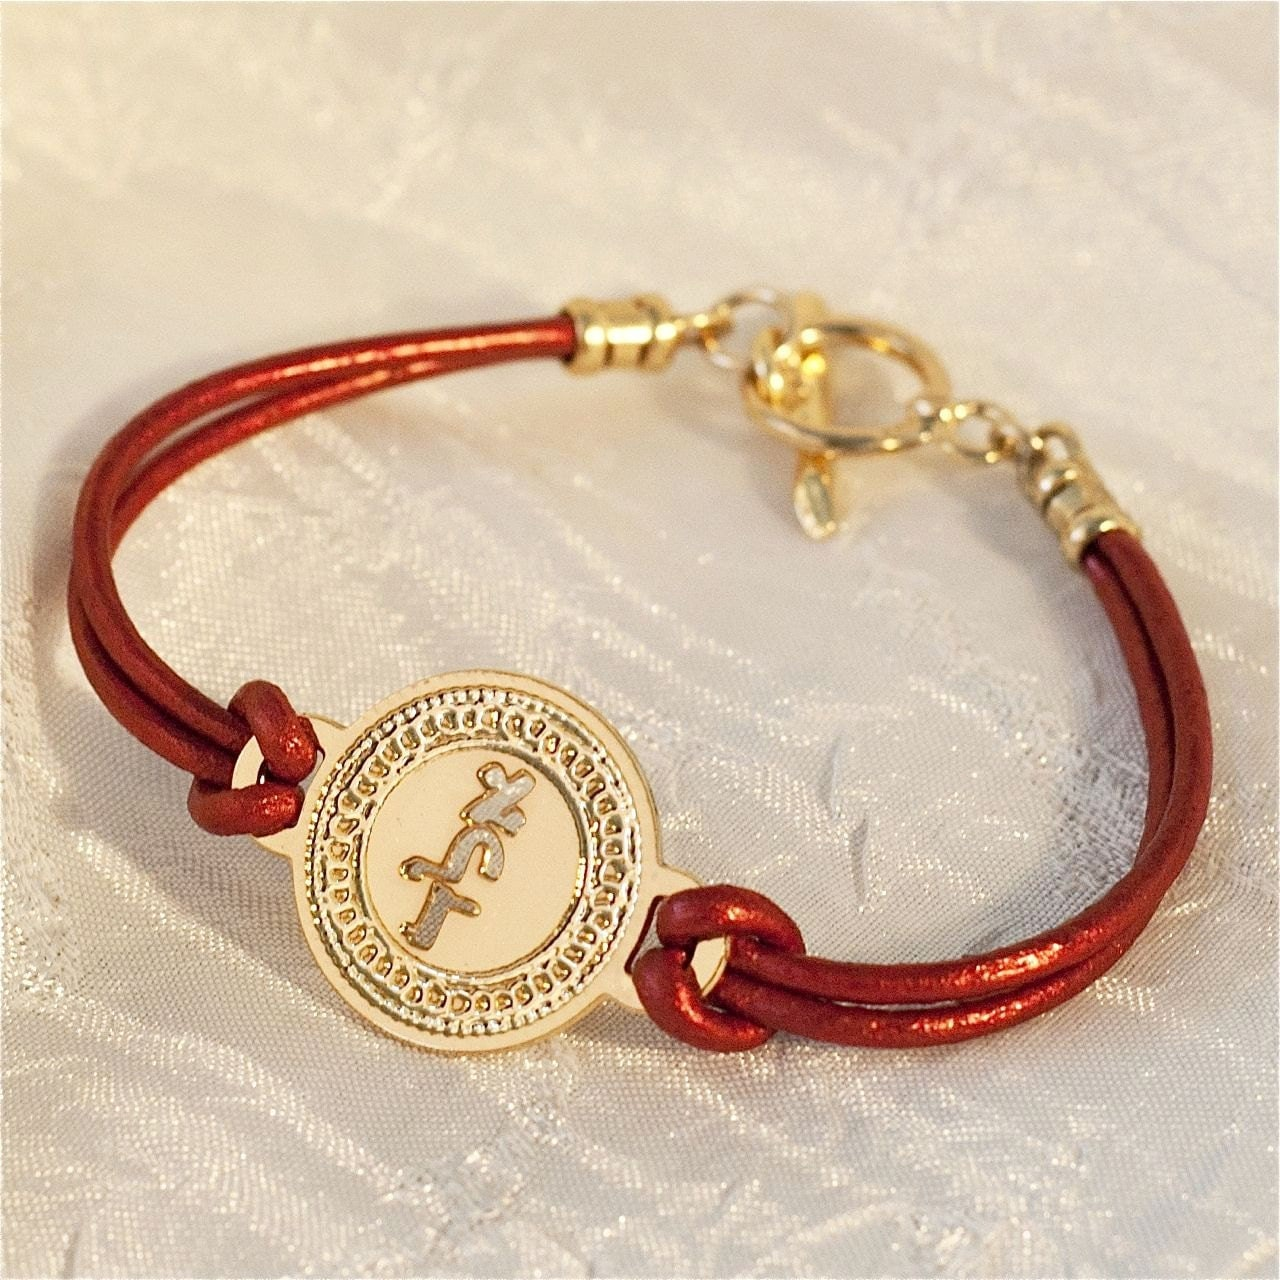 Kabbalah bracelet Gold coin on Red leather, Gold bracelet, Leather bracelet, Hebrew jewelry, Micro Macrame, Judaica jewelry, Jewish bracelet